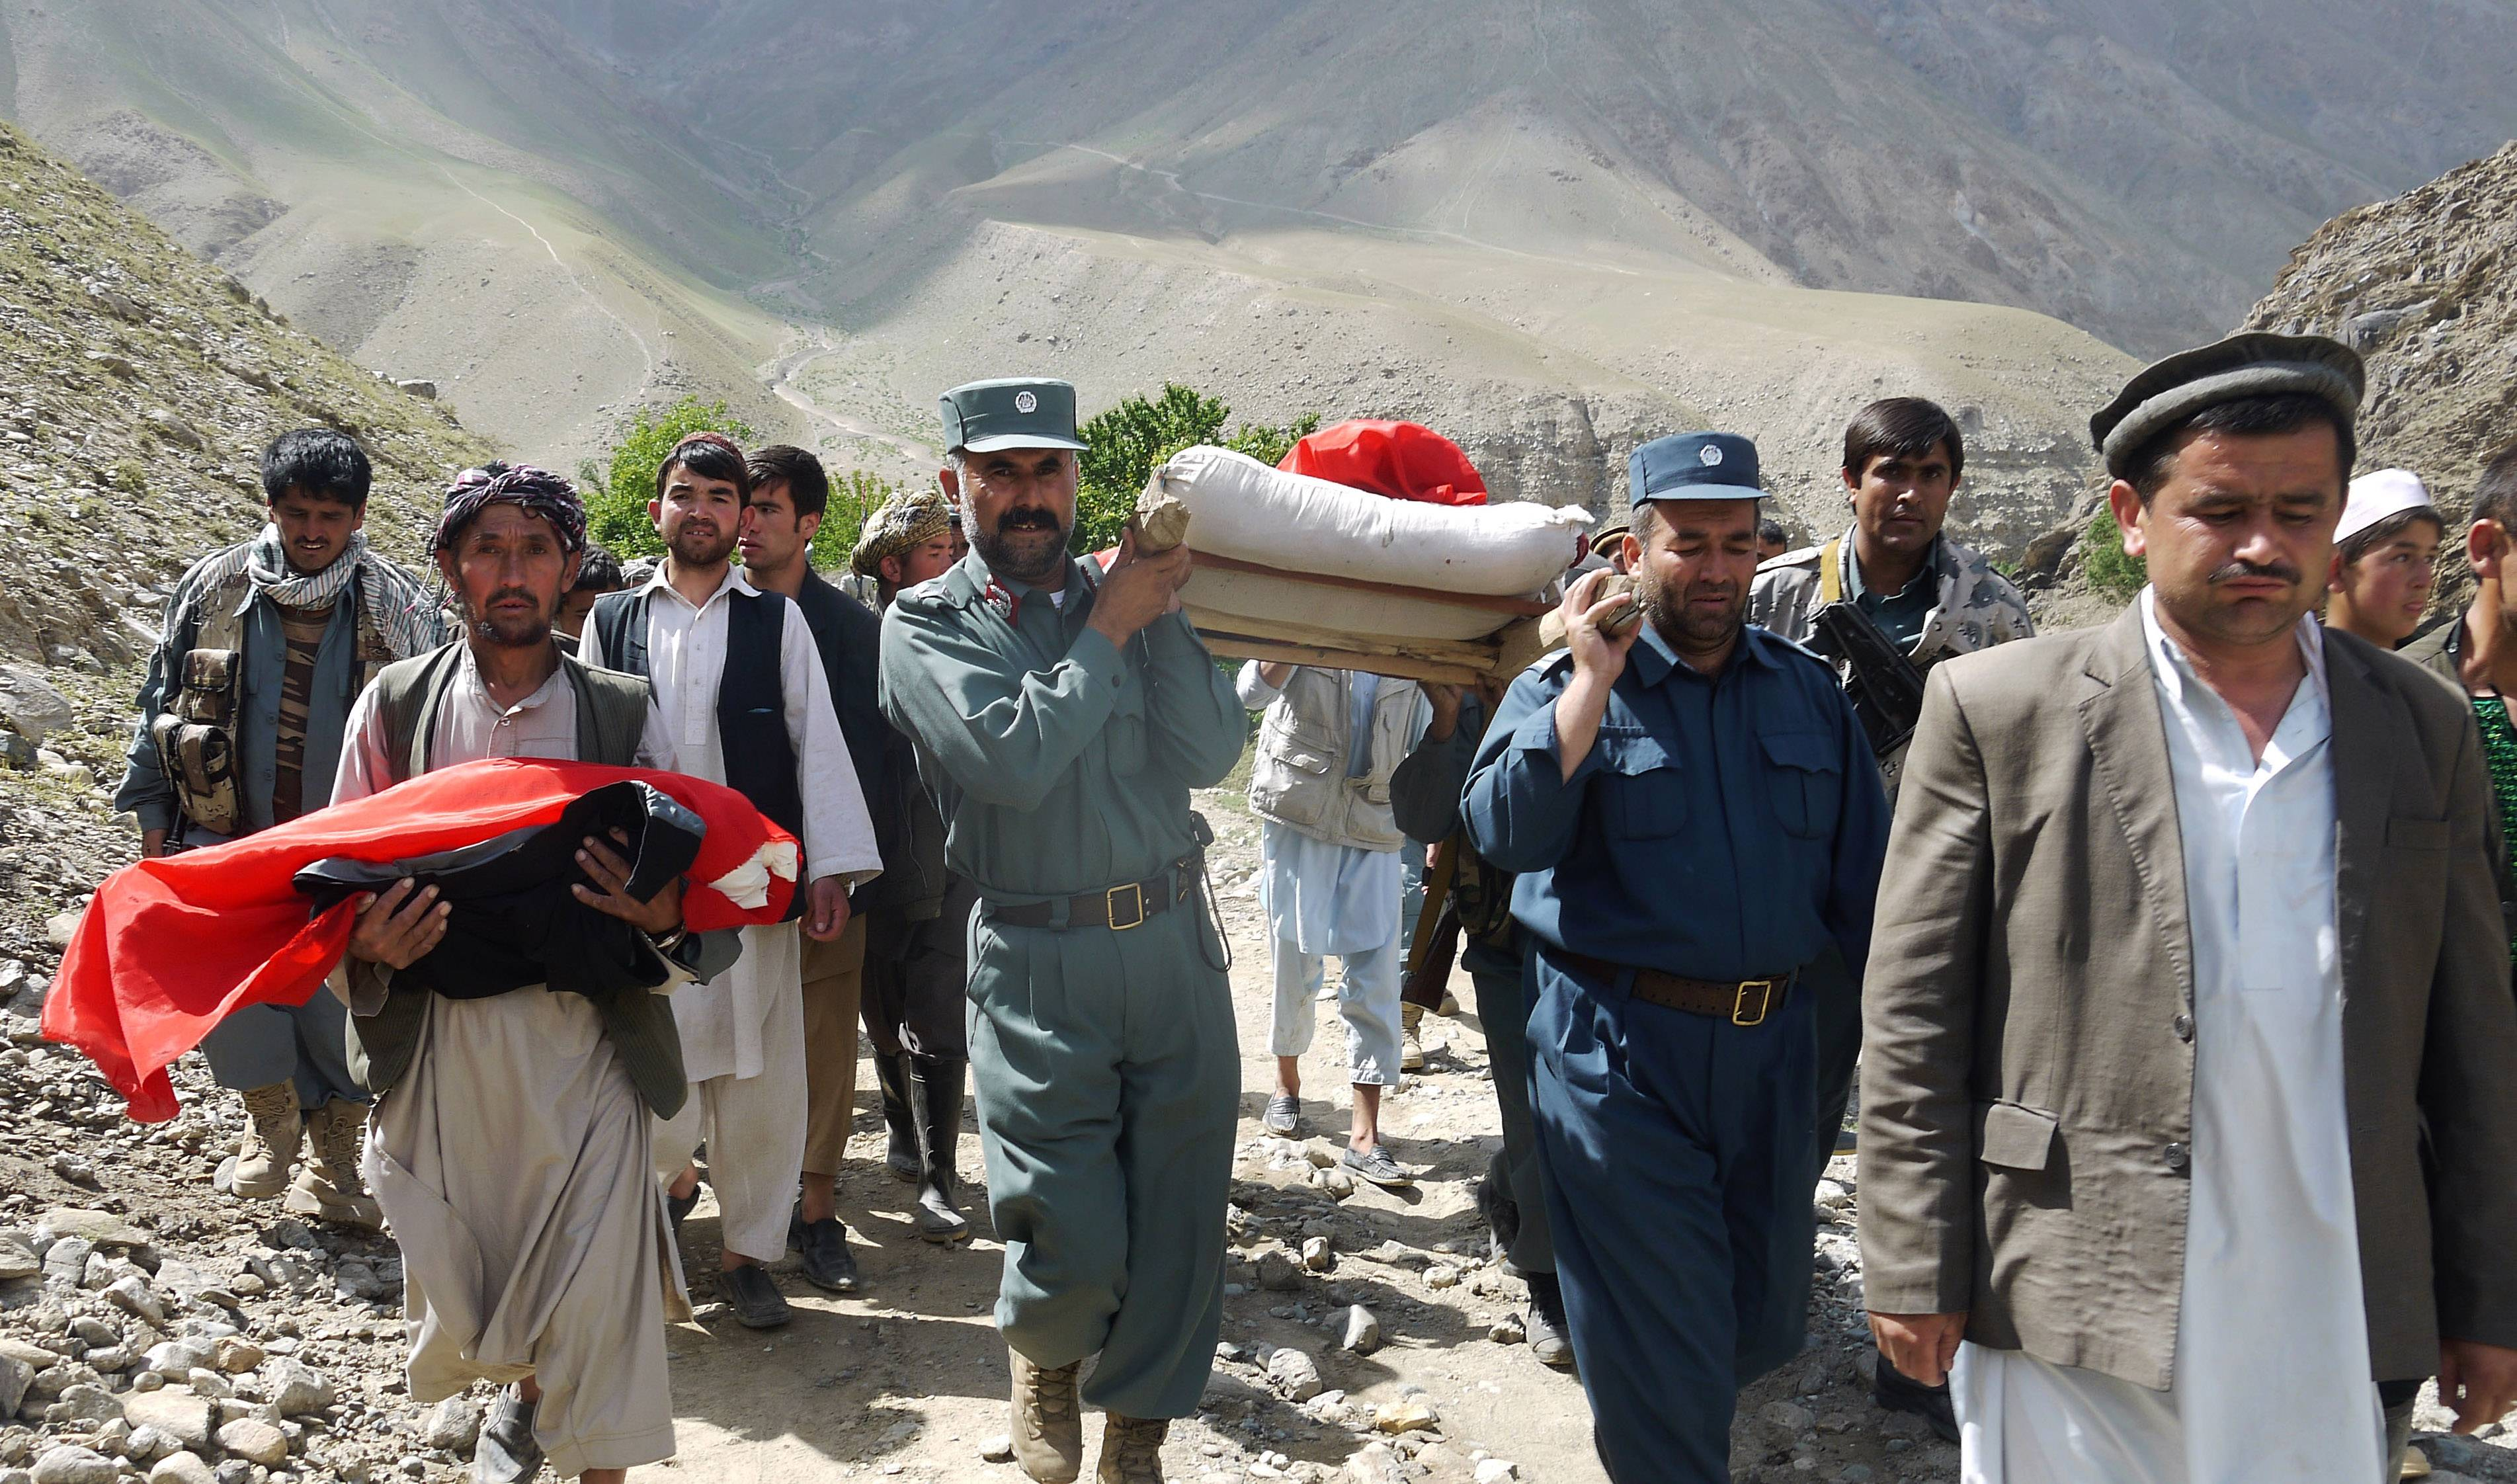 Afghan police and villagers carry bodies of people Saturday after flooding in the northeastern Baghlan province, north of Kabul, Afghanistan.